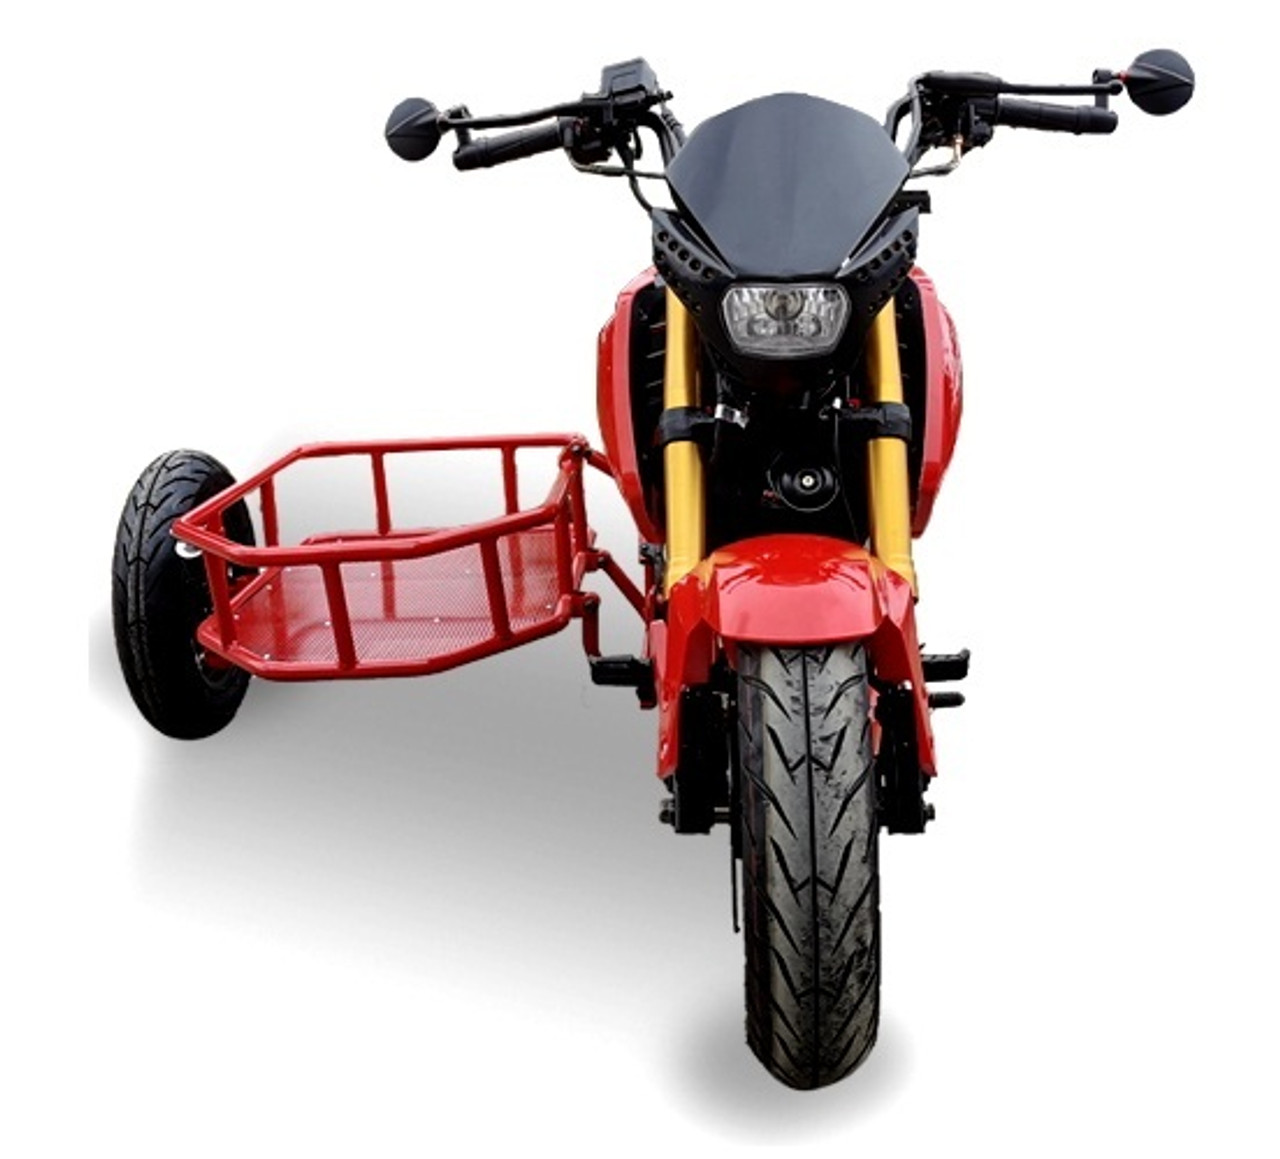 Ice Bear Fuerza (PMZ125-1S) Motorcycle, Electric Start Moped Scooter